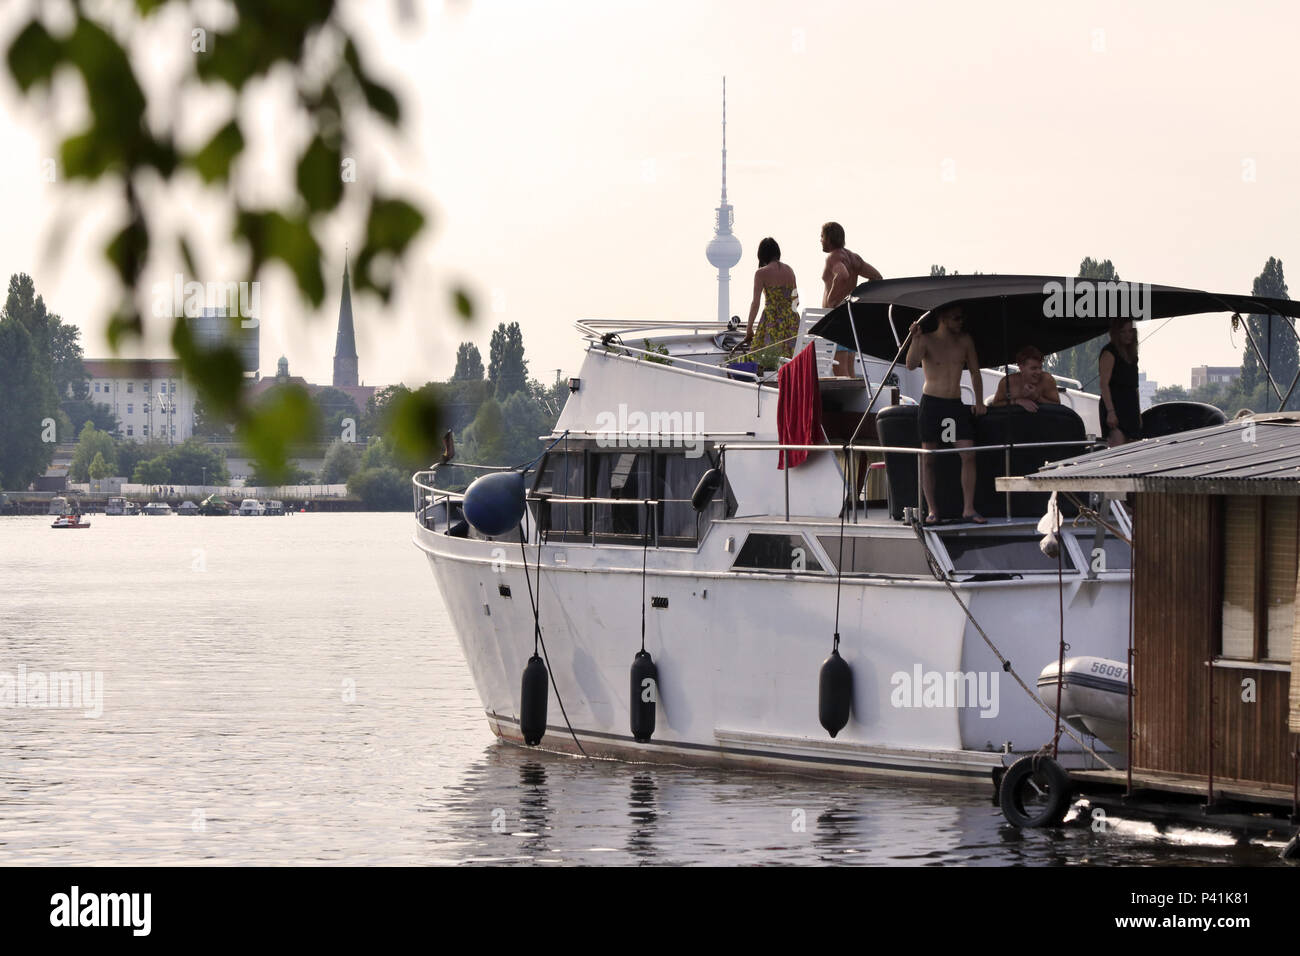 Berlin, Germany, Young people on a motorboat in Rummelsburger Bucht - Stock Image